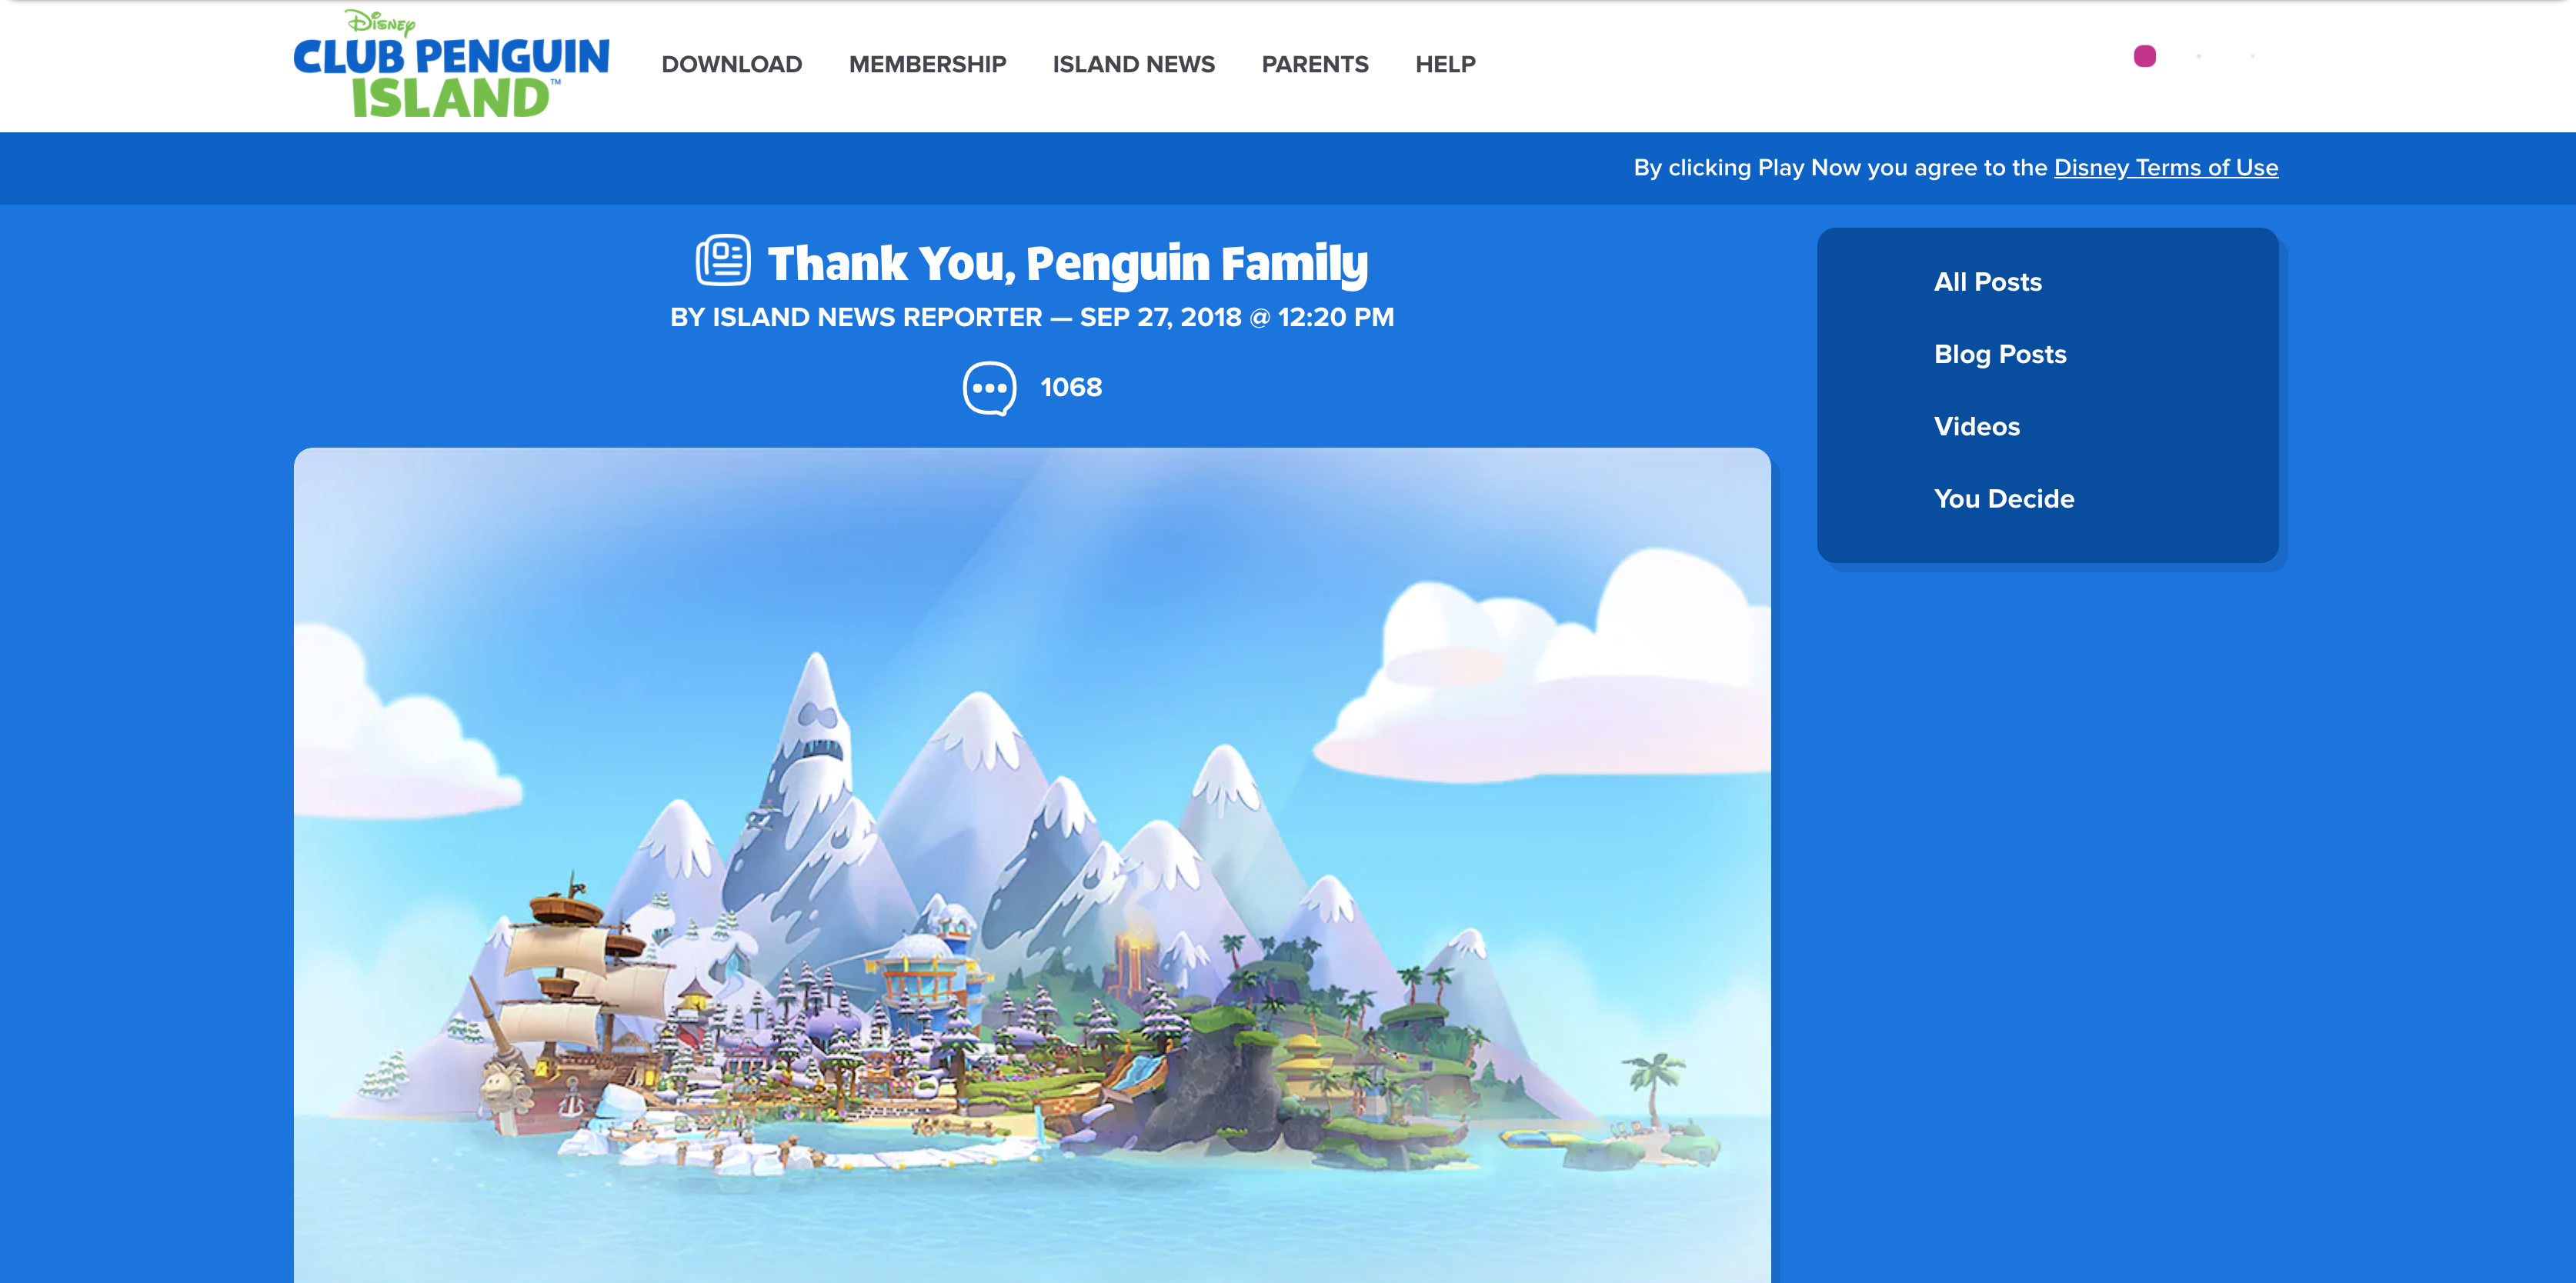 Club Penguin Island developers laid off, game shut down